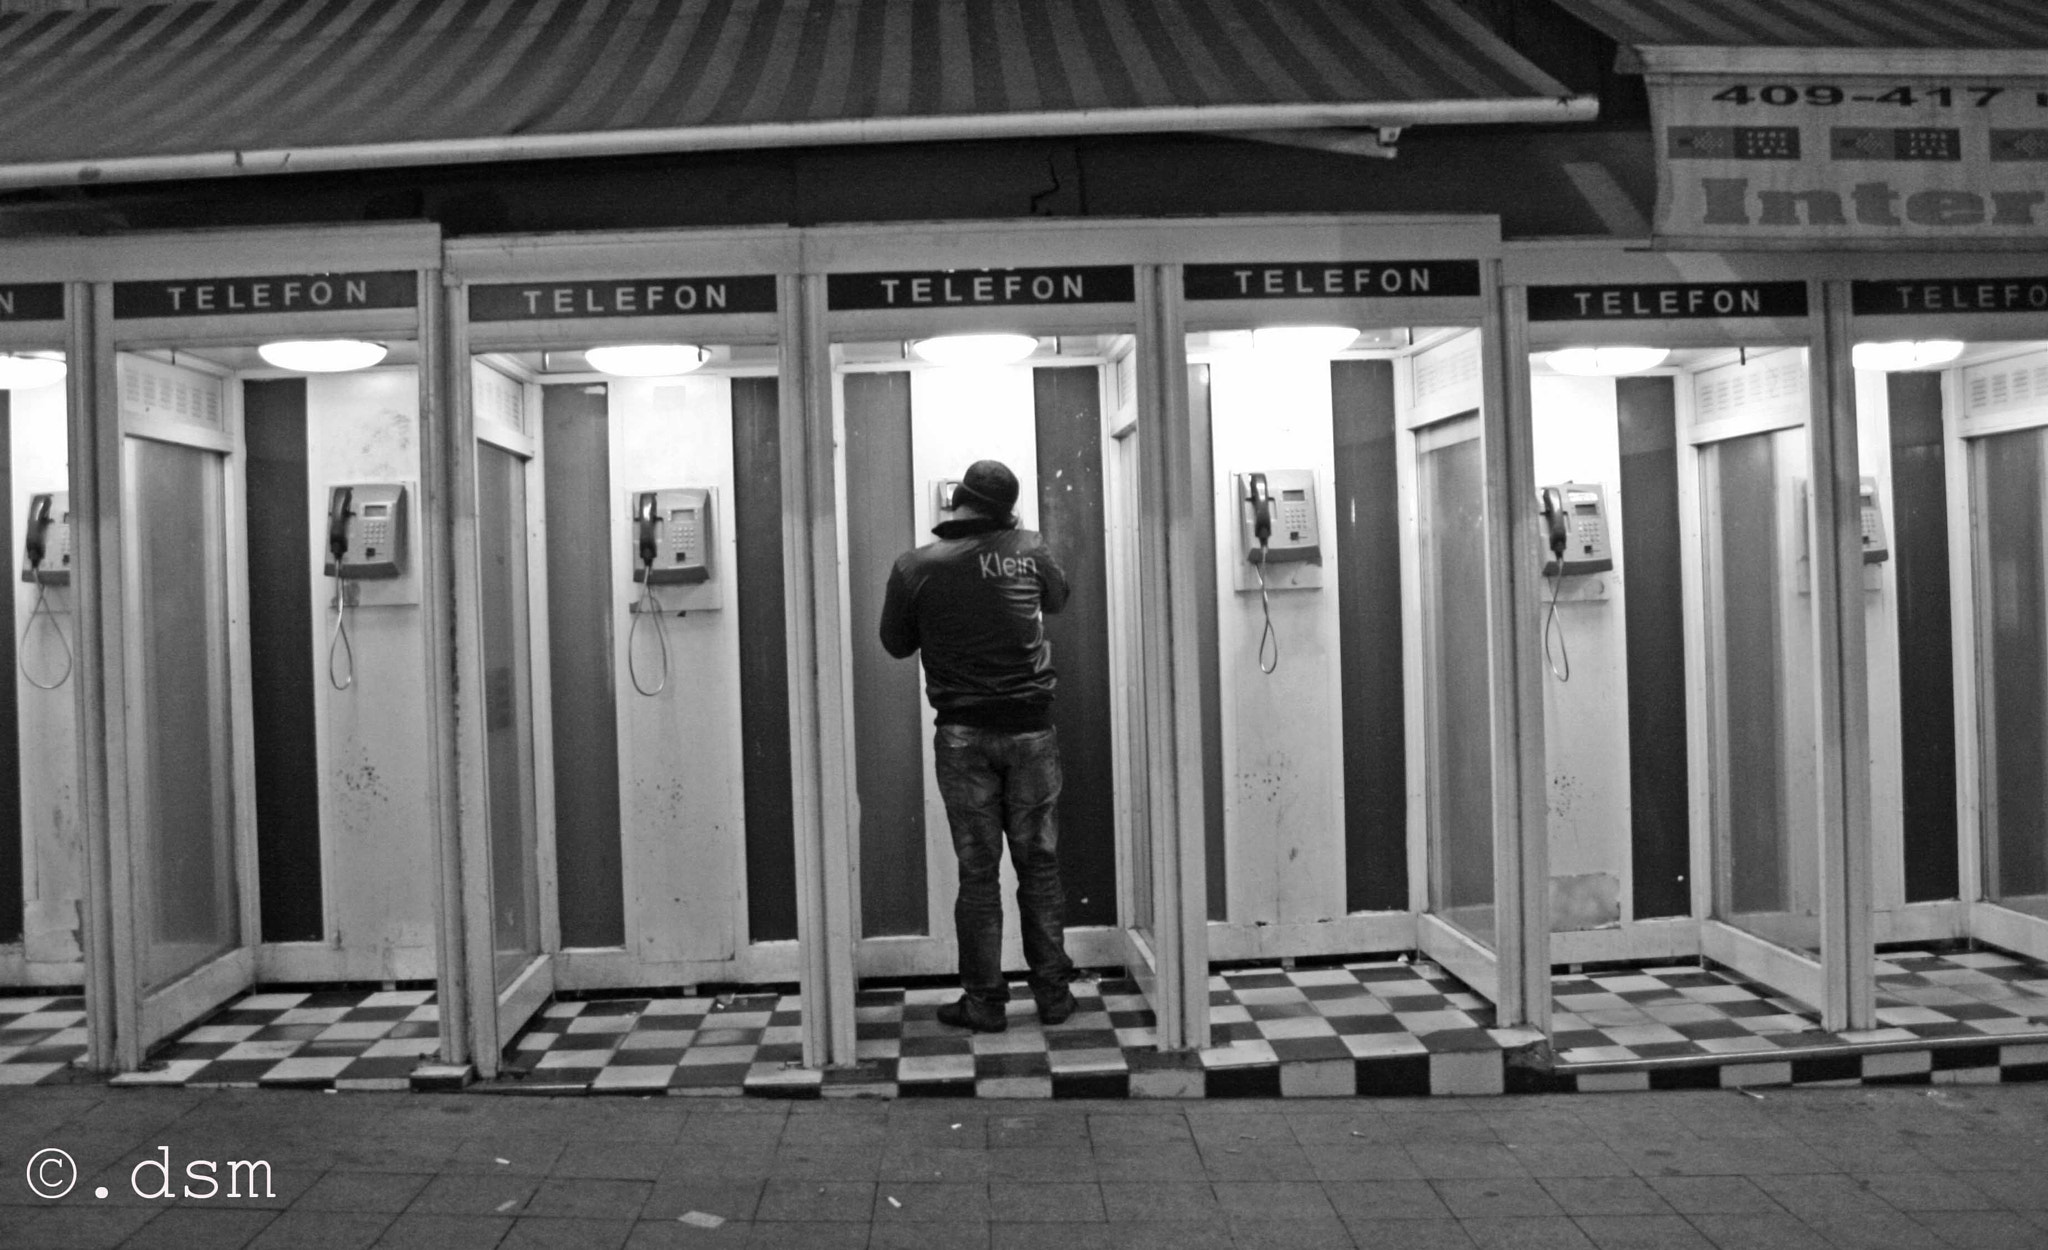 Photograph Phone booths by Domitilla Modesti on 500px